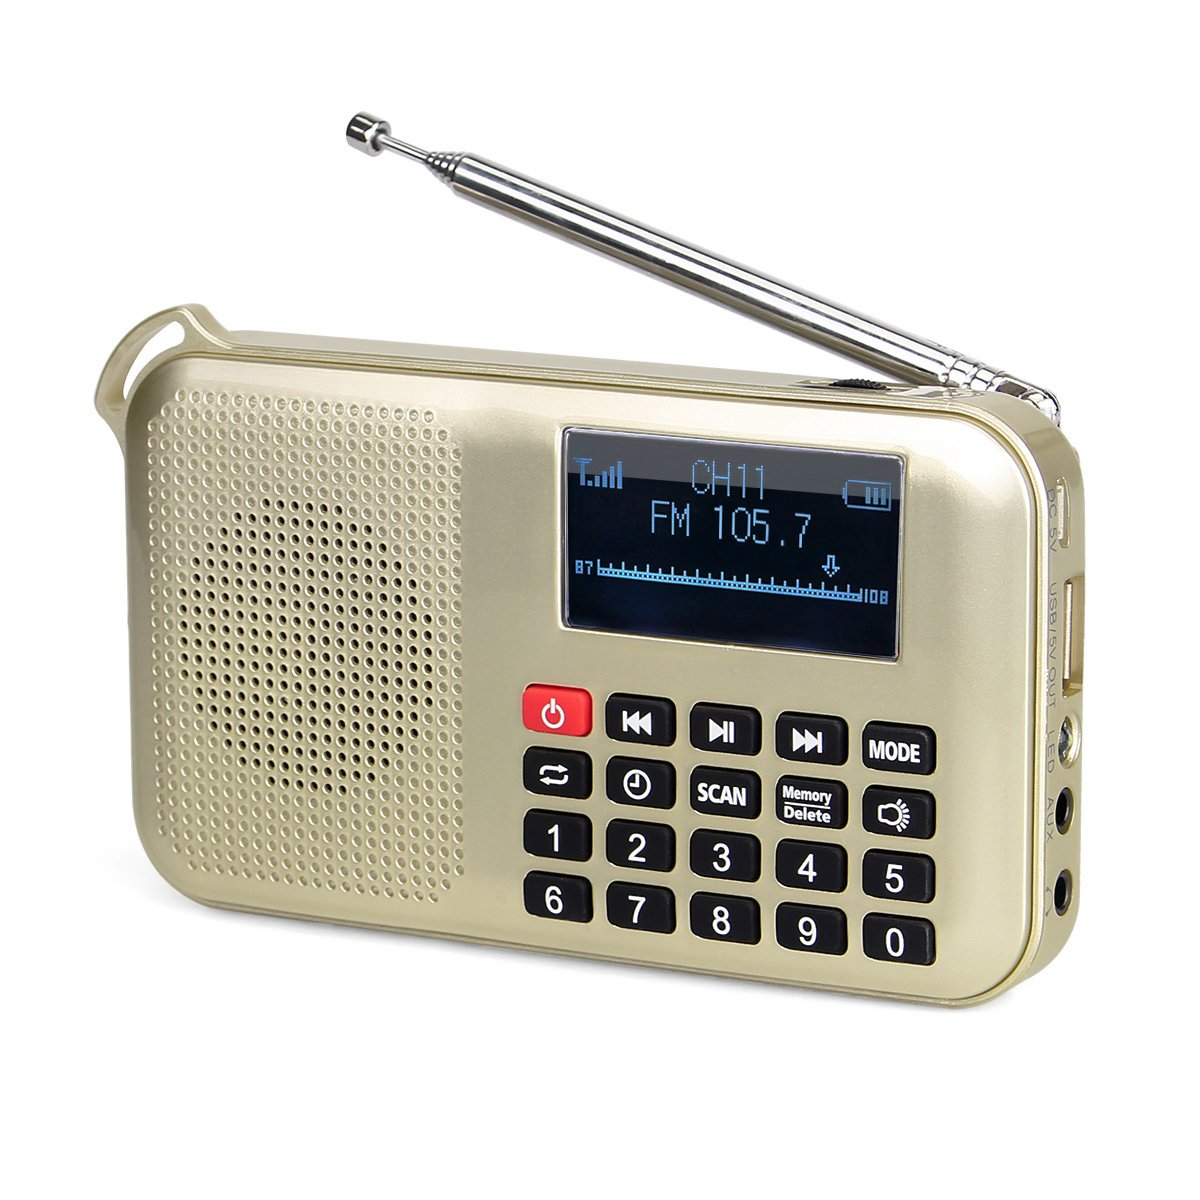 Retekess L-388 Portable FM Radio Solar Powered Digital Battery Powered Support TF Card USB disk Sleep Timer MP3 Player with Flashlight Charger to Phone(Gold)